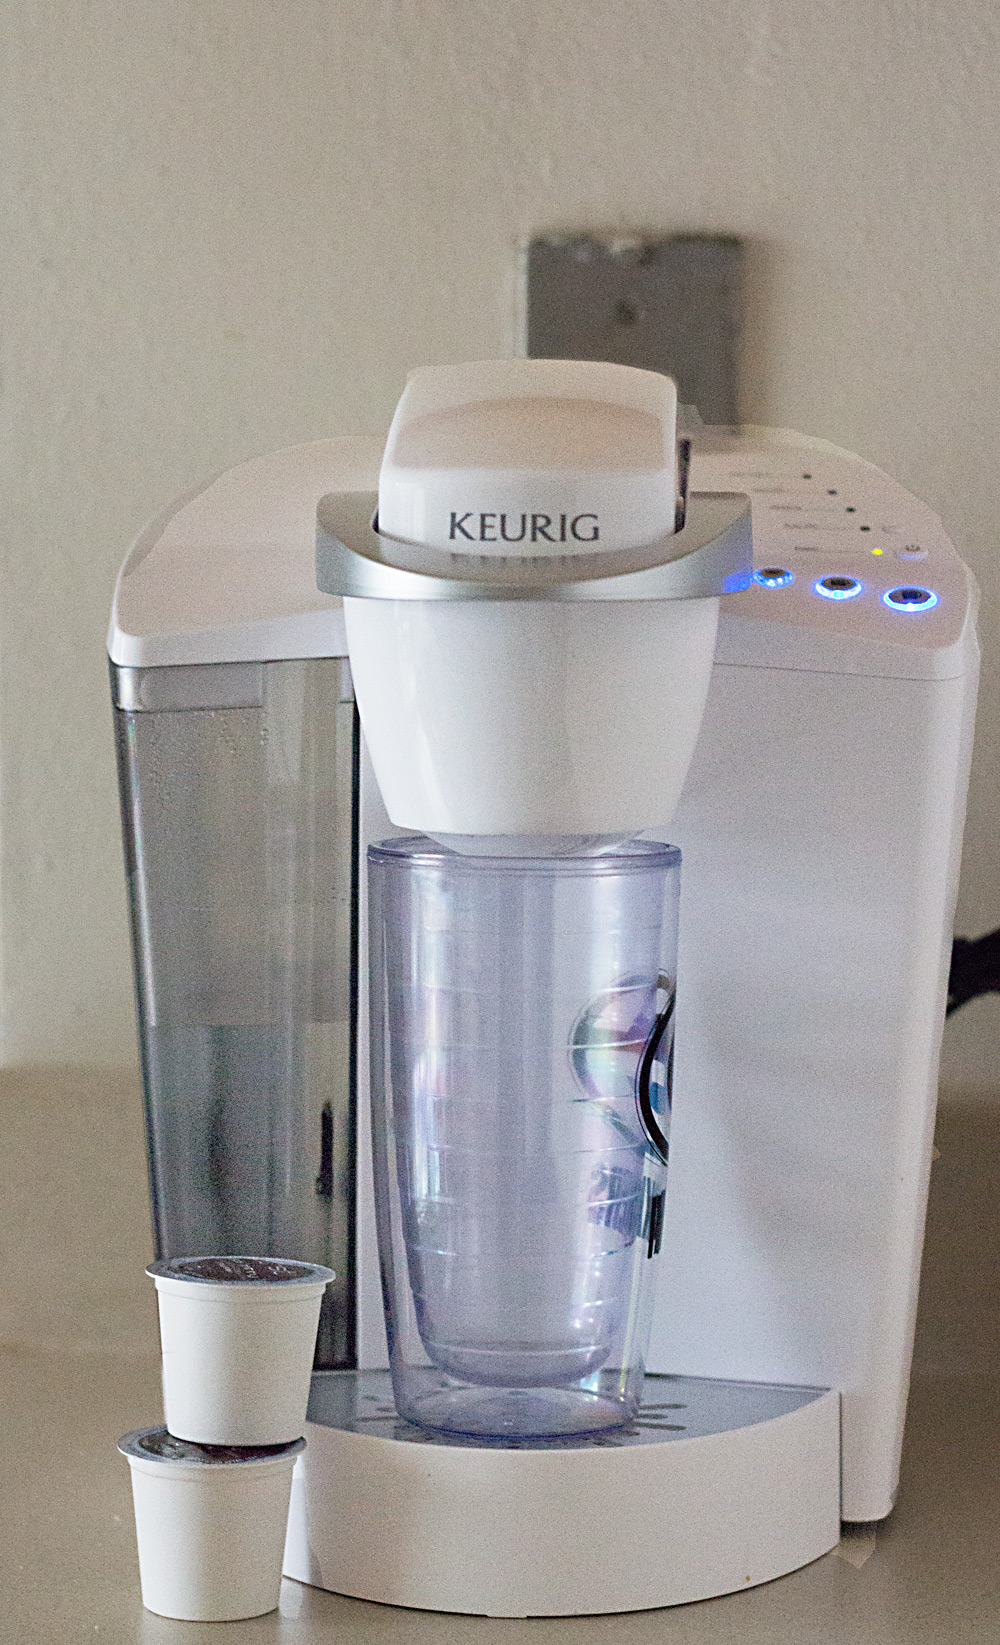 how to brew iced coffee with a Keurig brewing machine BrewItUp BrewOverIce shop How Do I Make Iced Coffee With My Keurig